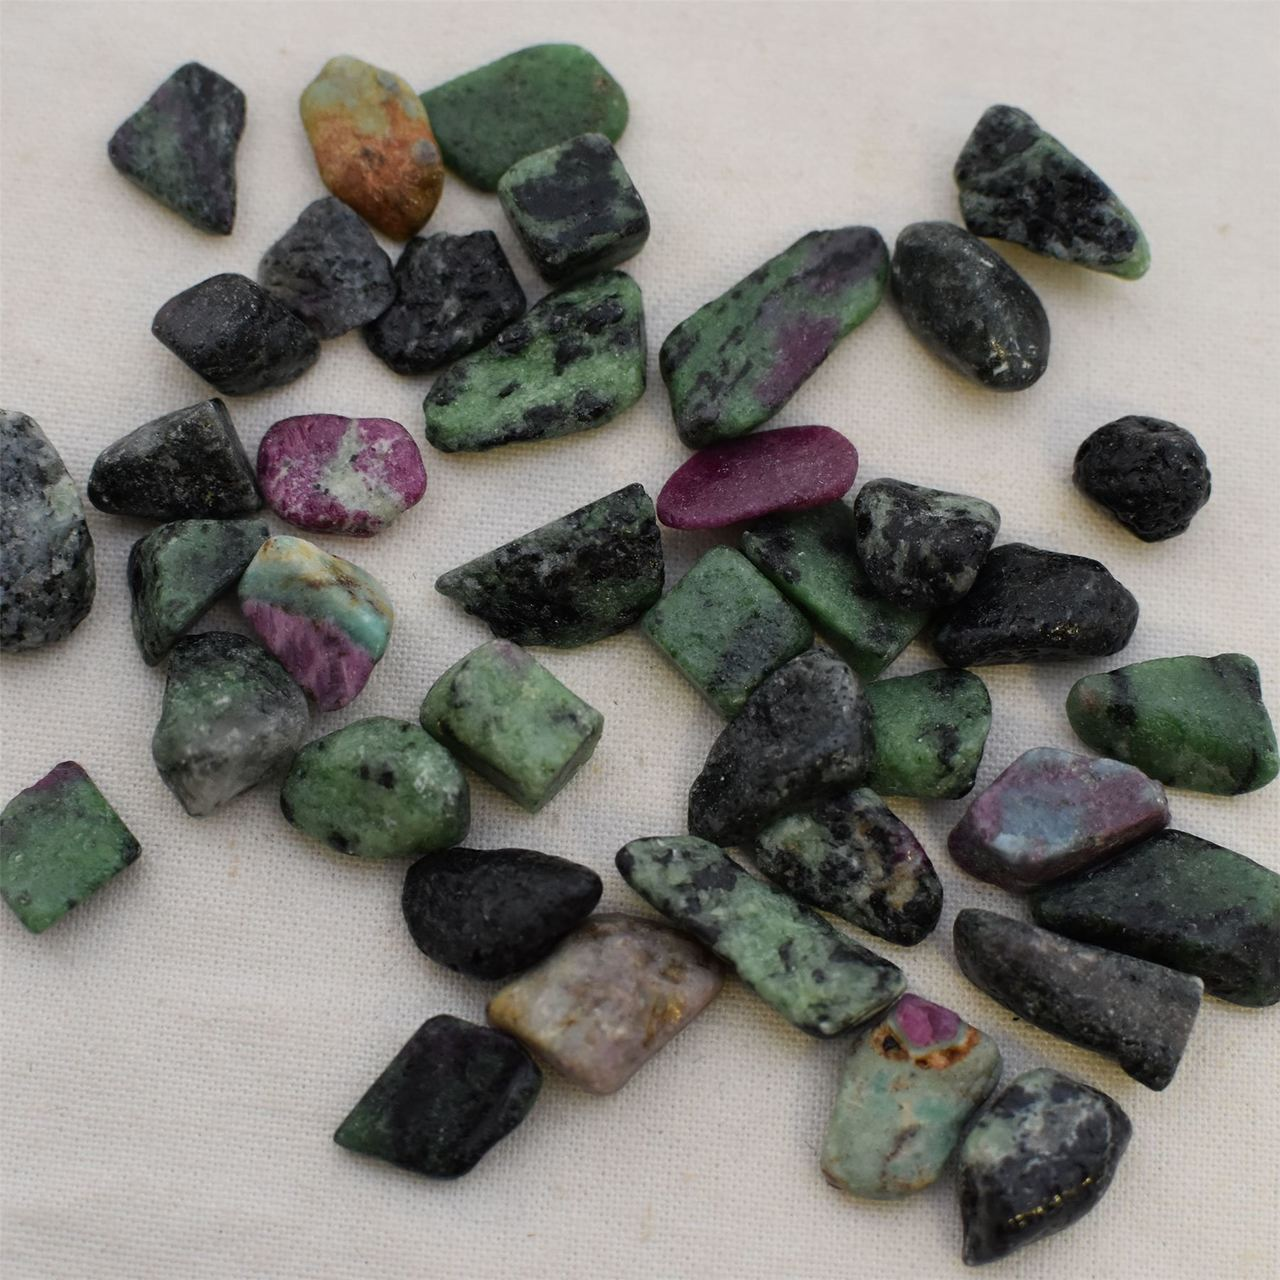 Ruby Zoisite - Know Information About